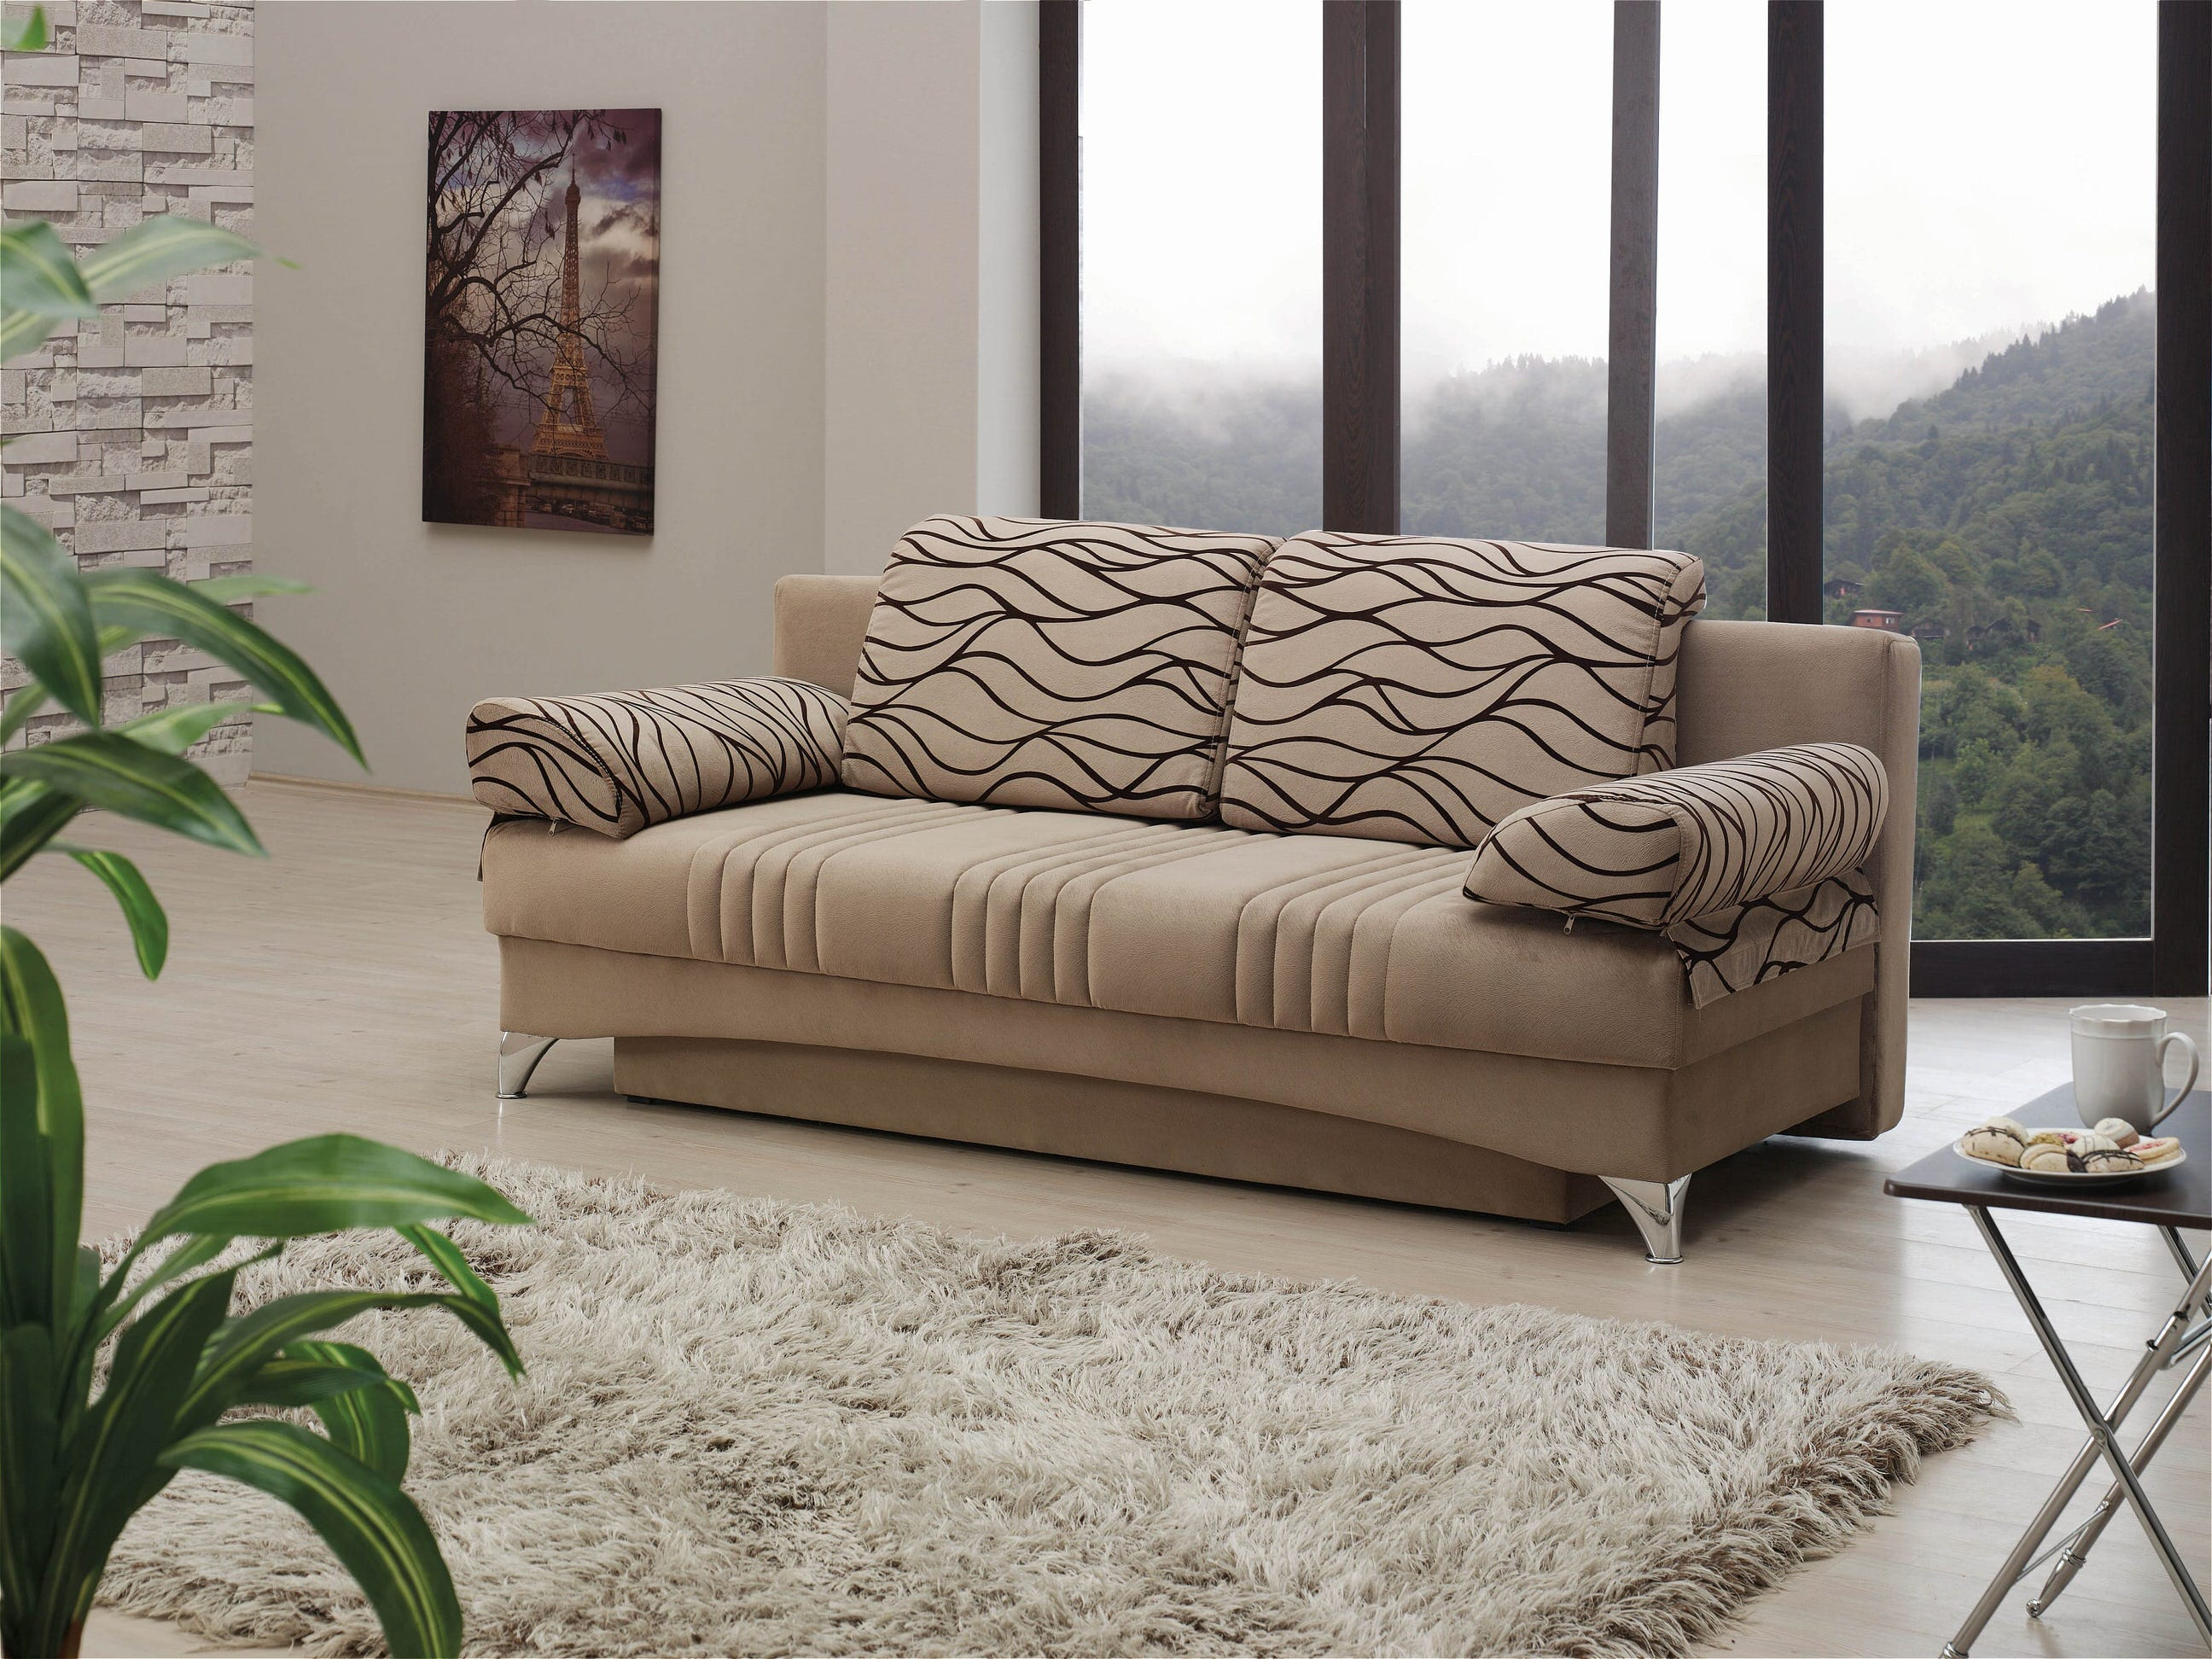 traditional piece fabric loveseat groups rcwilley jsp shiloh classic couch rc brown set and willey living store room view furniture